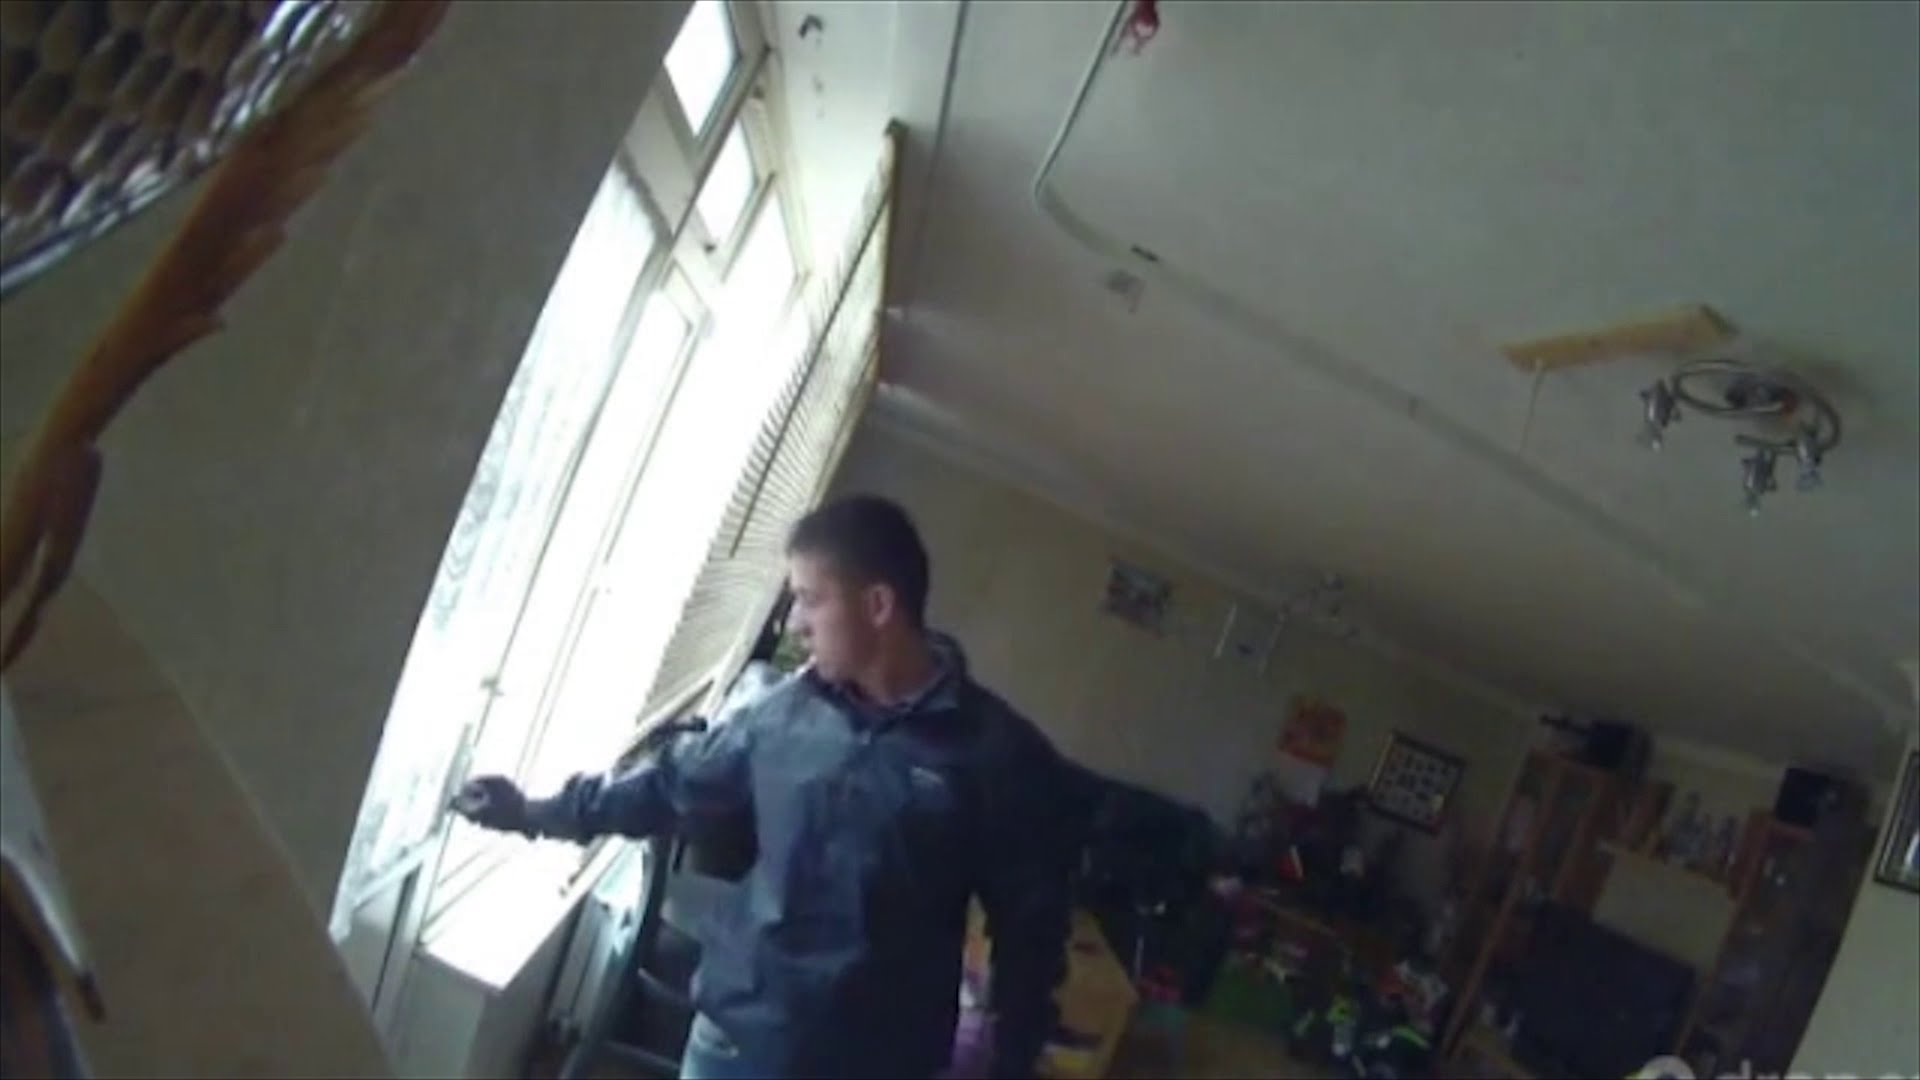 House burglar spots CCTV during crime